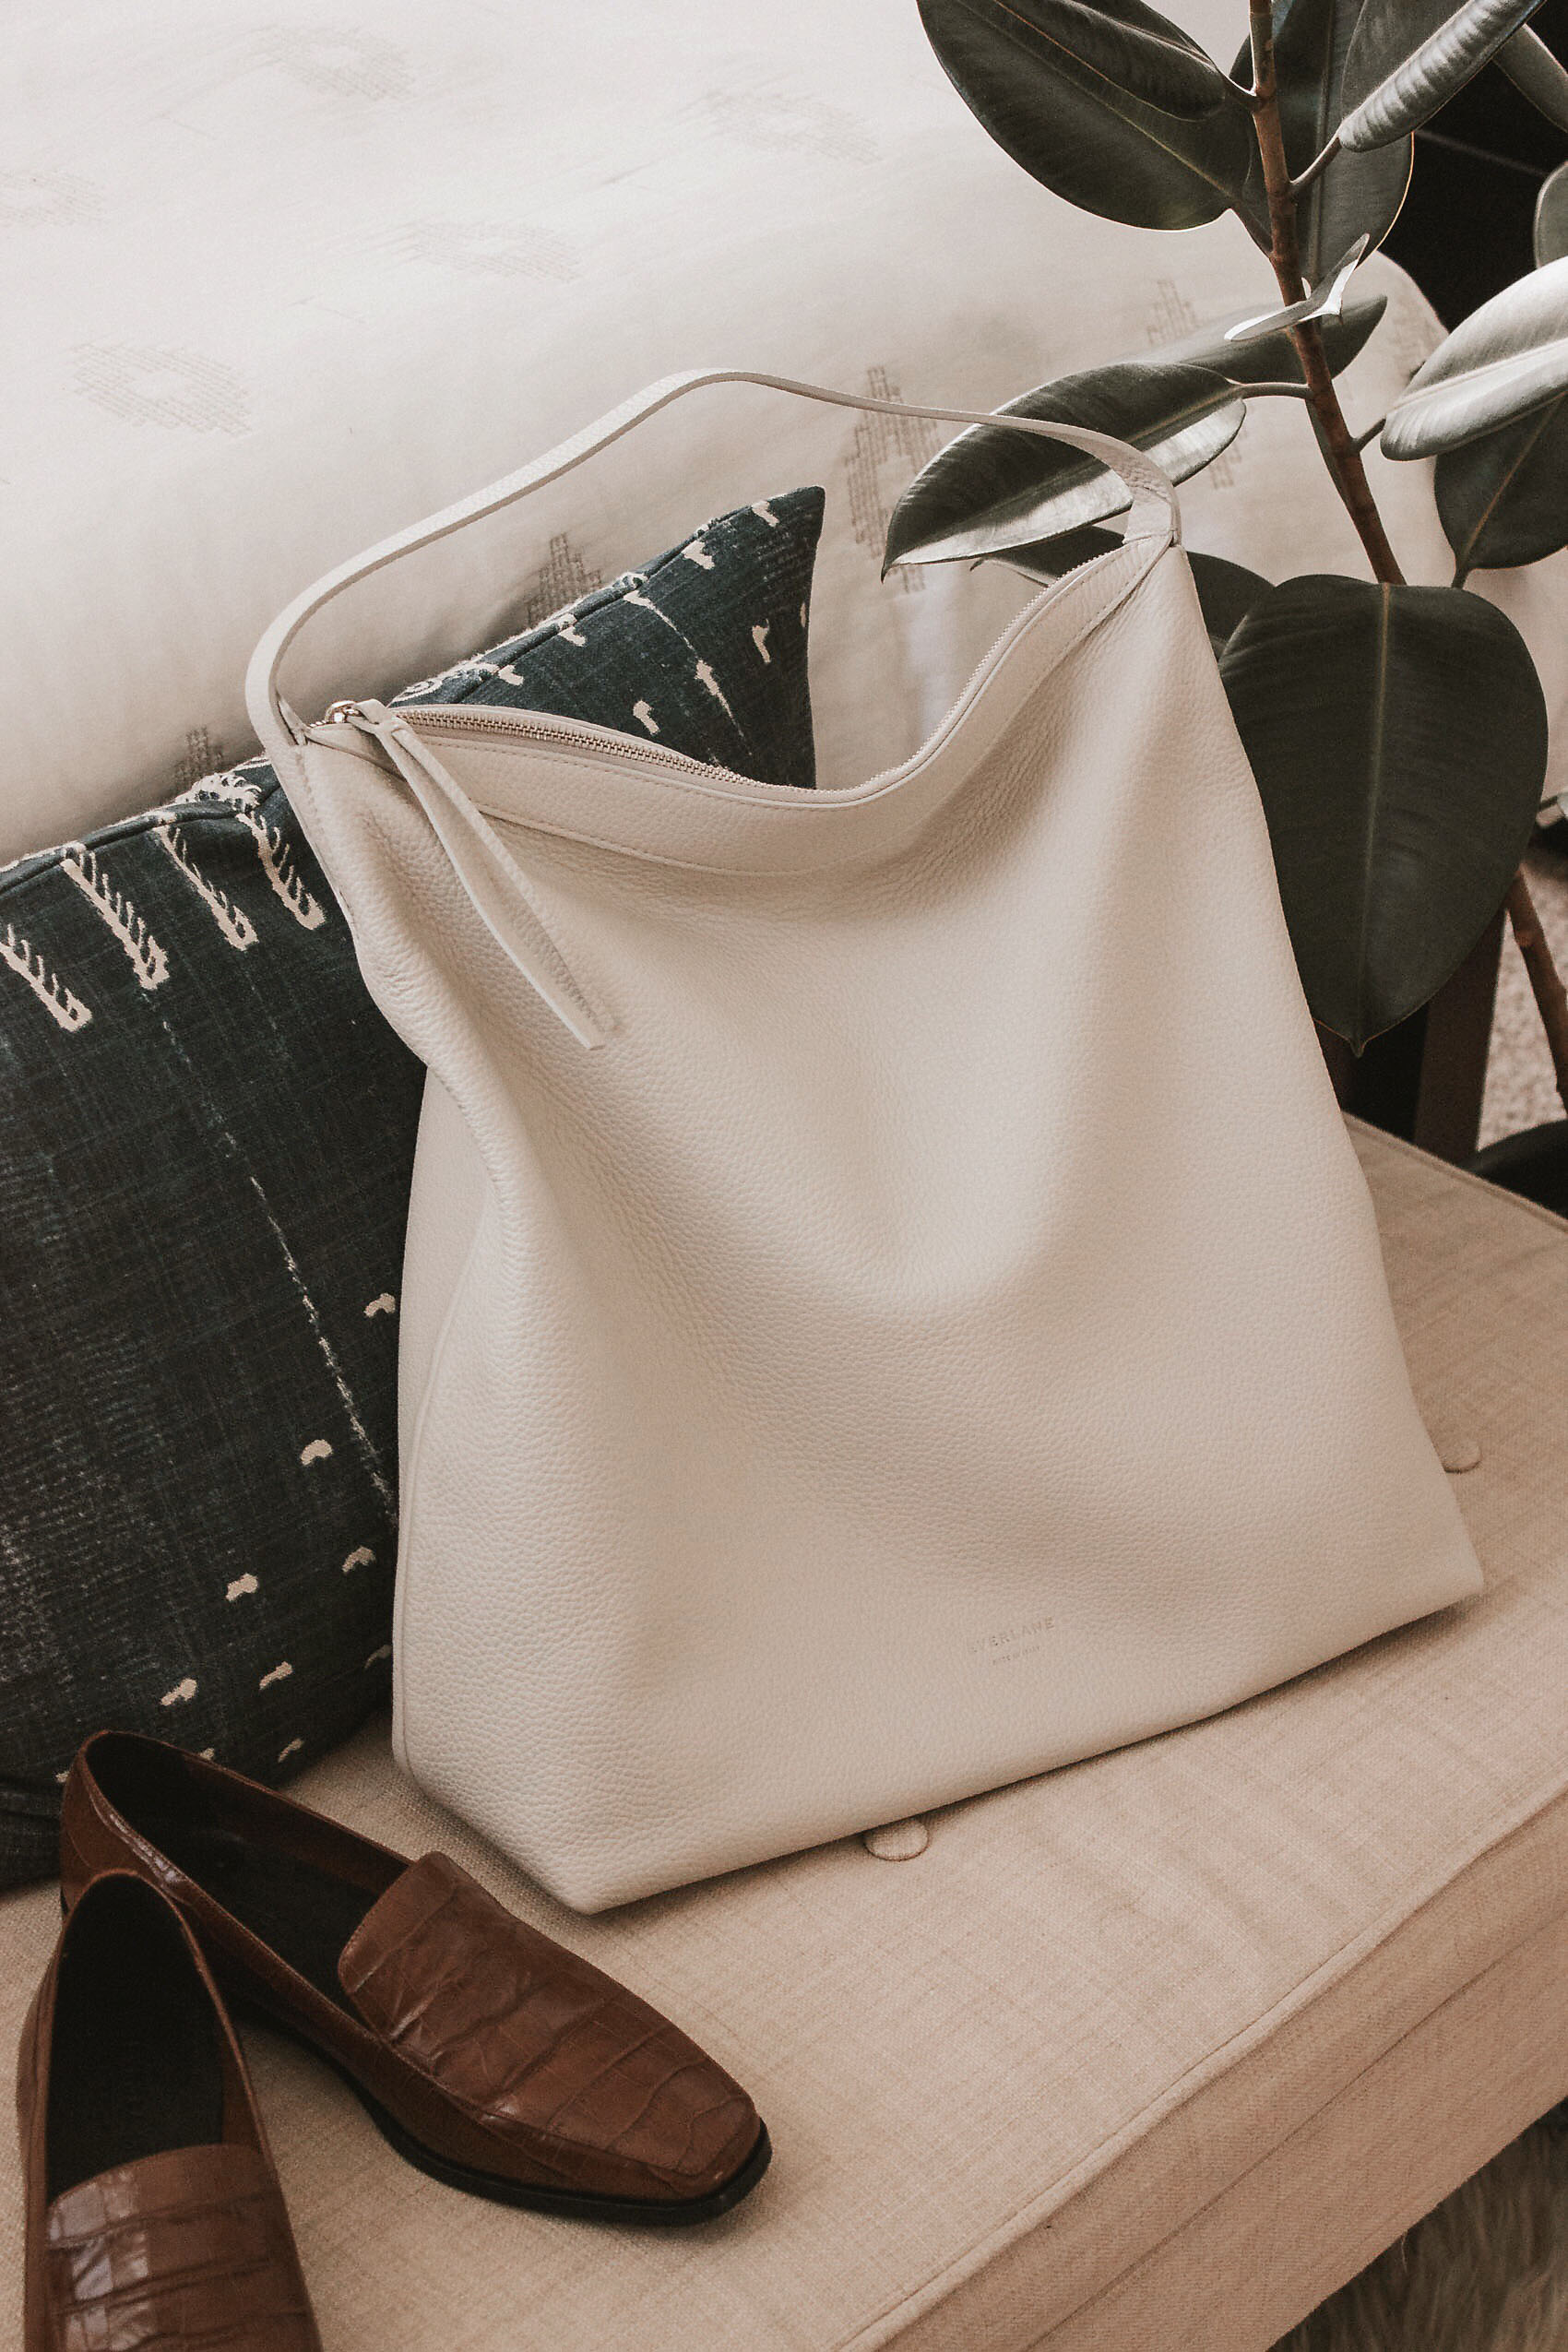 Everlane Boss Bag with Everlane Croc Loafers